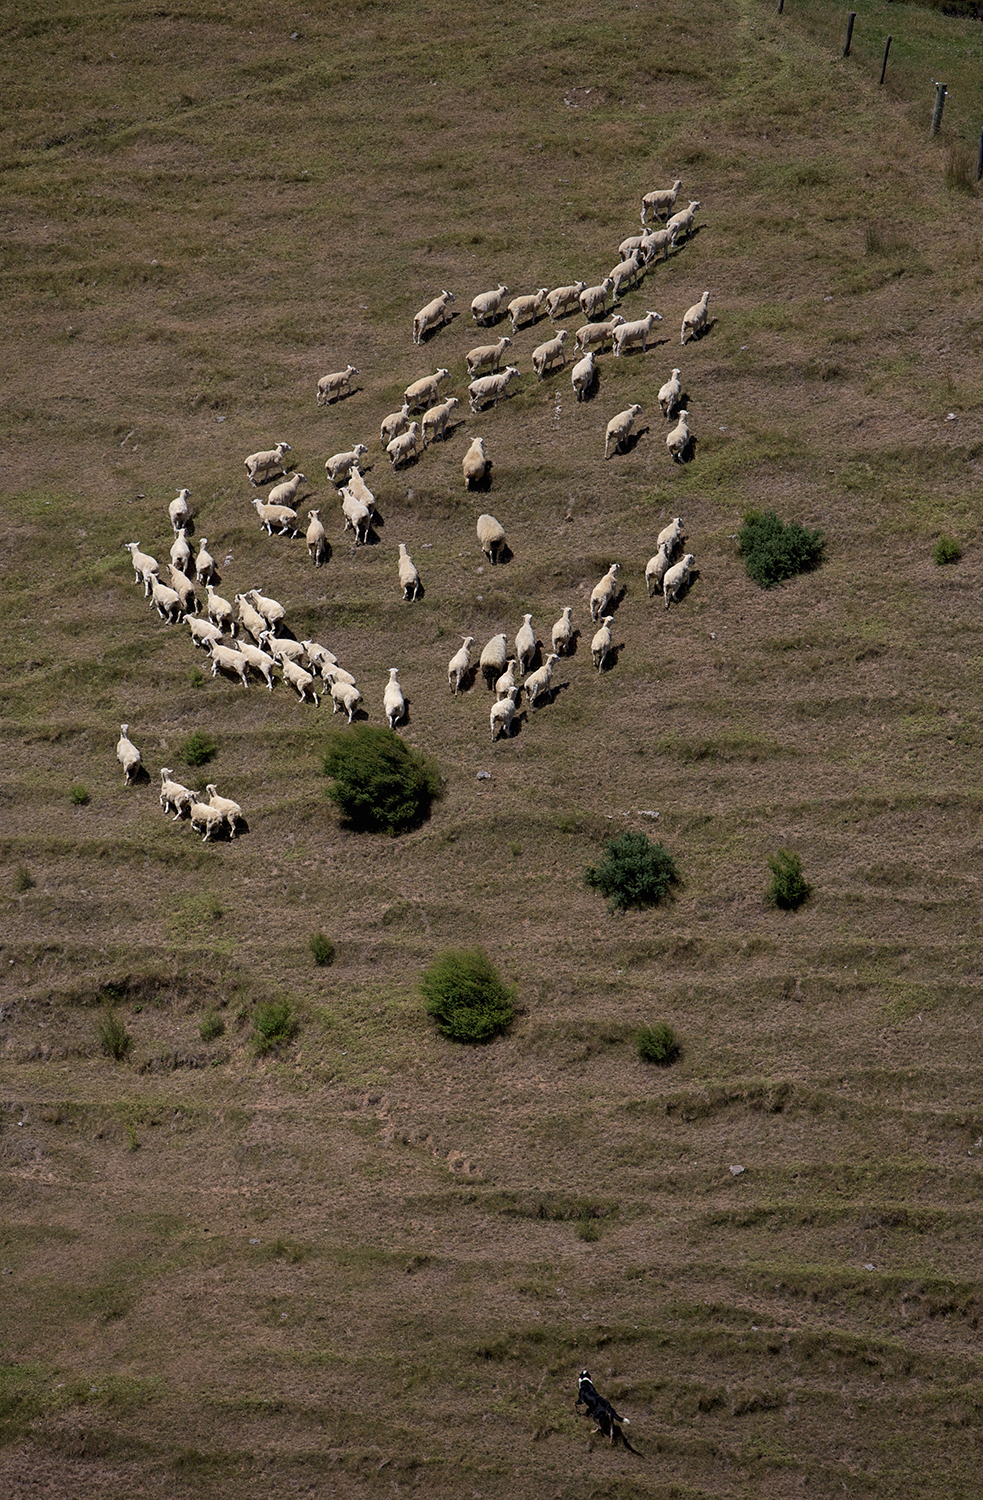 NZ_Sheep_Culture_ 027.jpg